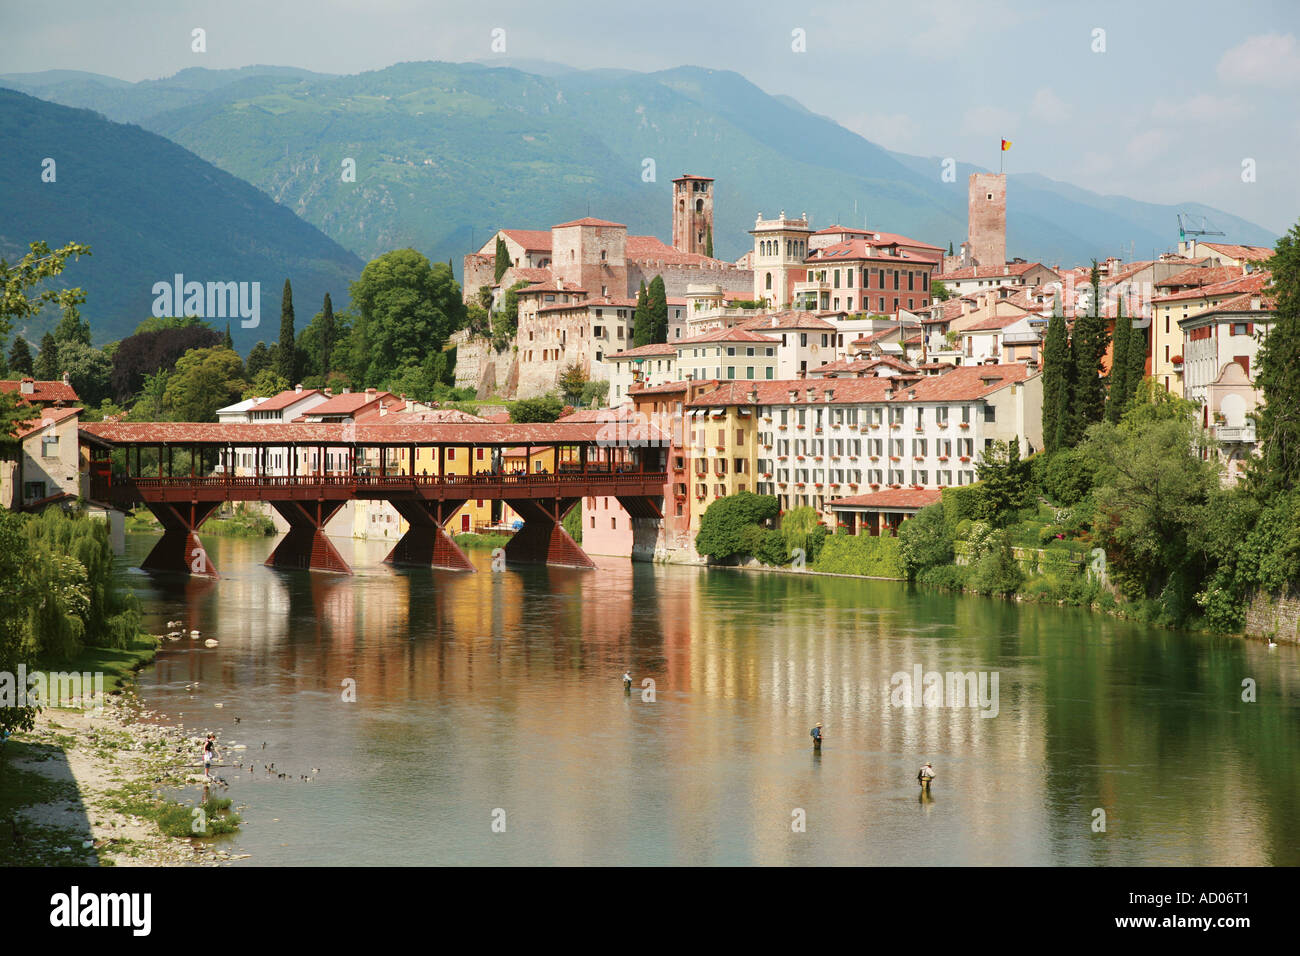 The old bridge over the river in bassano del grappa in for Arredamento bassano del grappa